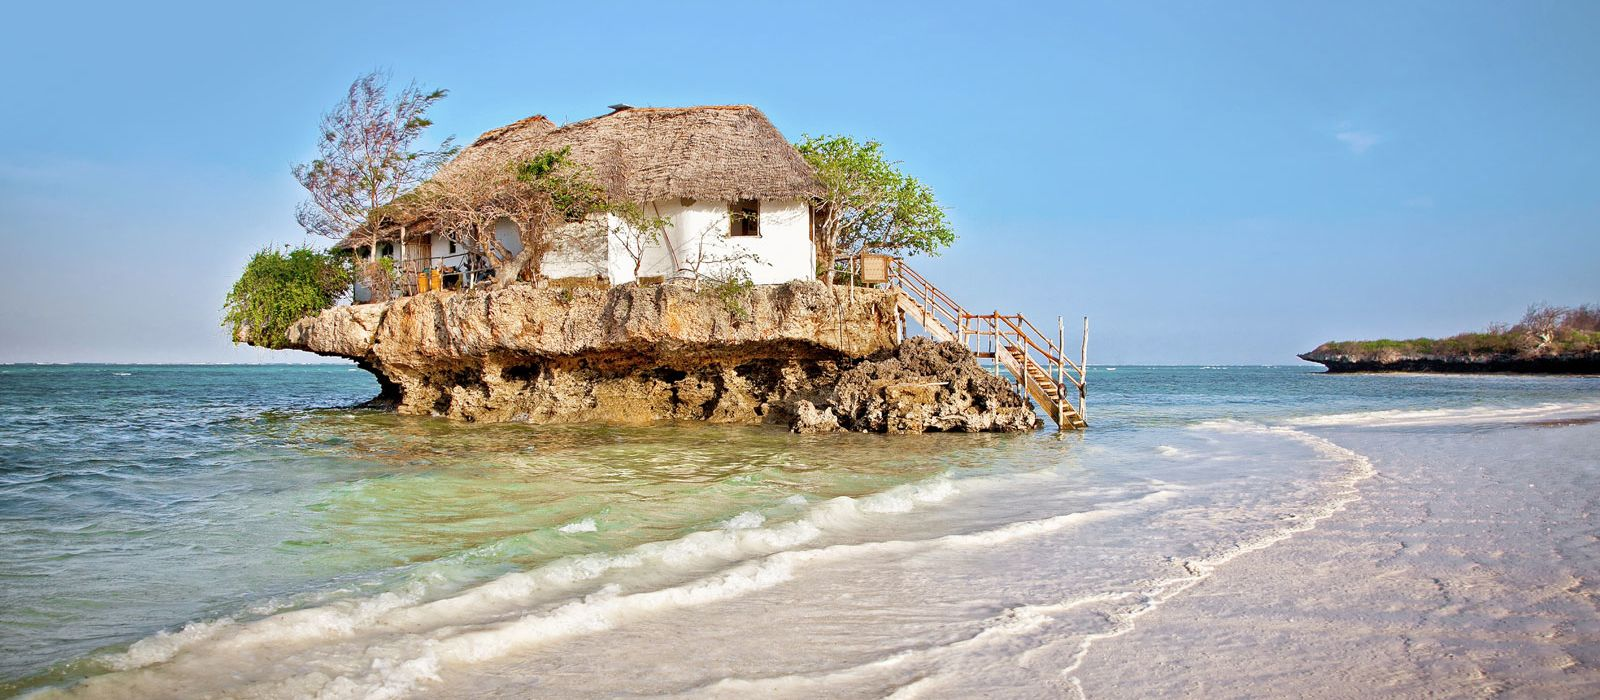 Check out the iconic Rock Restaurant, on Zanzibar's east coast